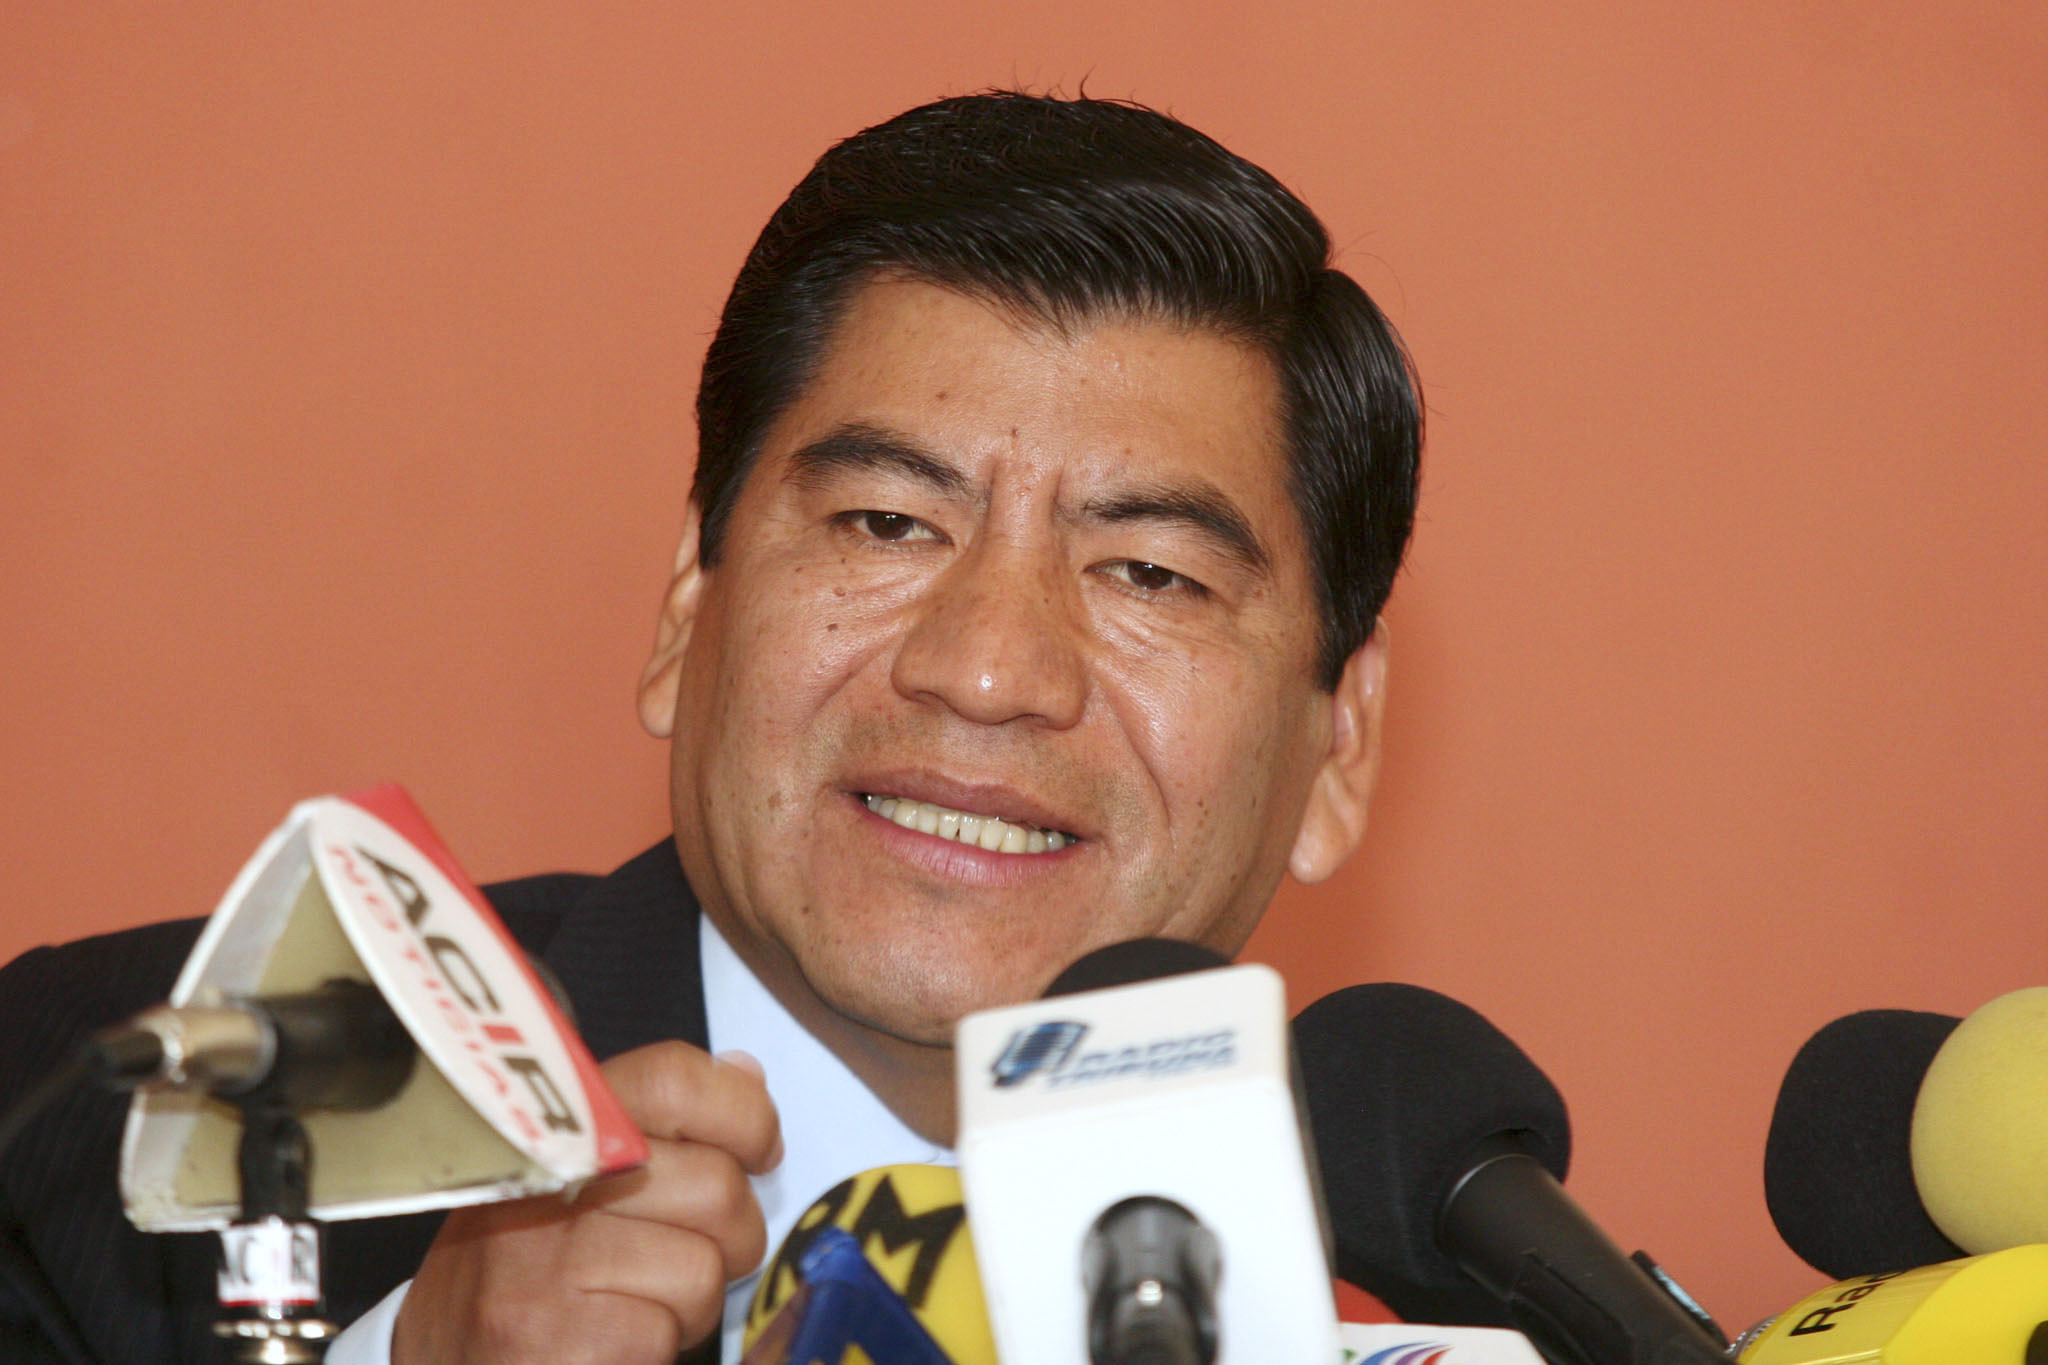 In this Feb. 15, 2006 file photo, the governor of the Mexican state of Puebla, Mario Marin speaks during a news conference in Puebla, Mexico. Mexican authorities arrested on Feb. 3, 2021 the former governor on charges that he had a reporter who investigated his role in a pedophilia ring illegally arrested and tortured, an official said Thursday, Feb. 4, 2021. (AP Photo/Joel Merino, File)